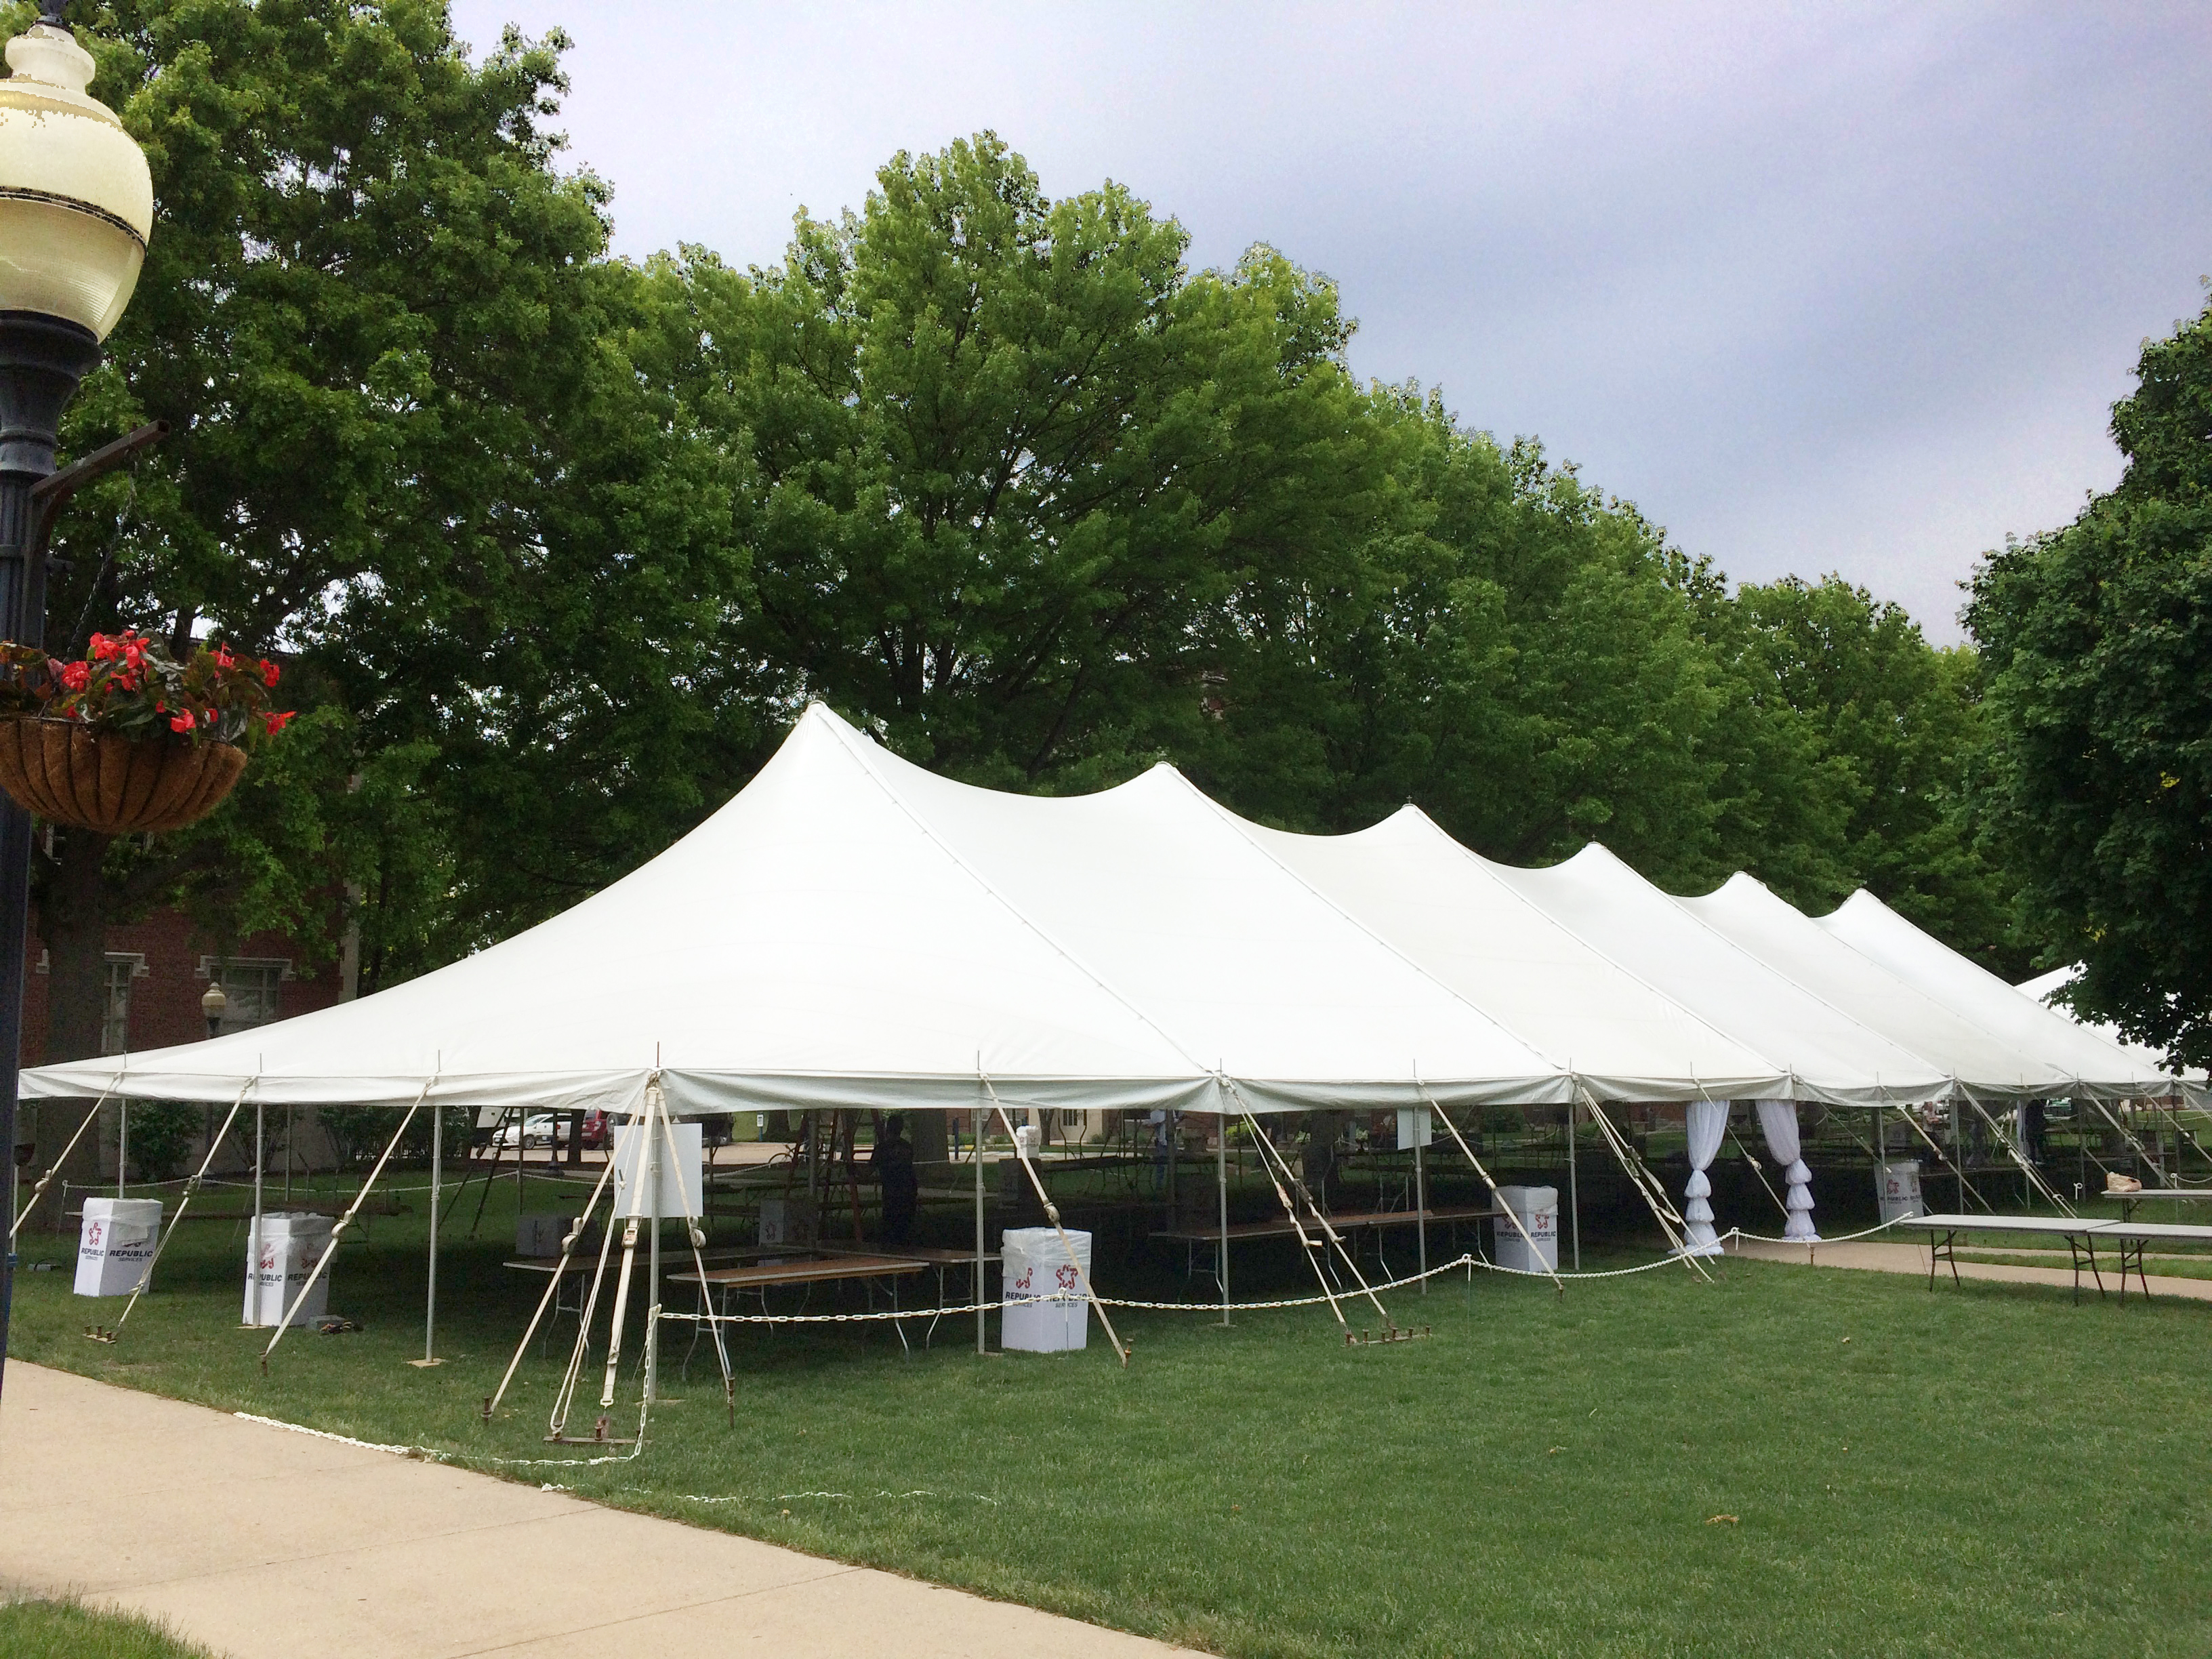 40 X140 Rope And Pole Tent Set Up For A Wine Festival